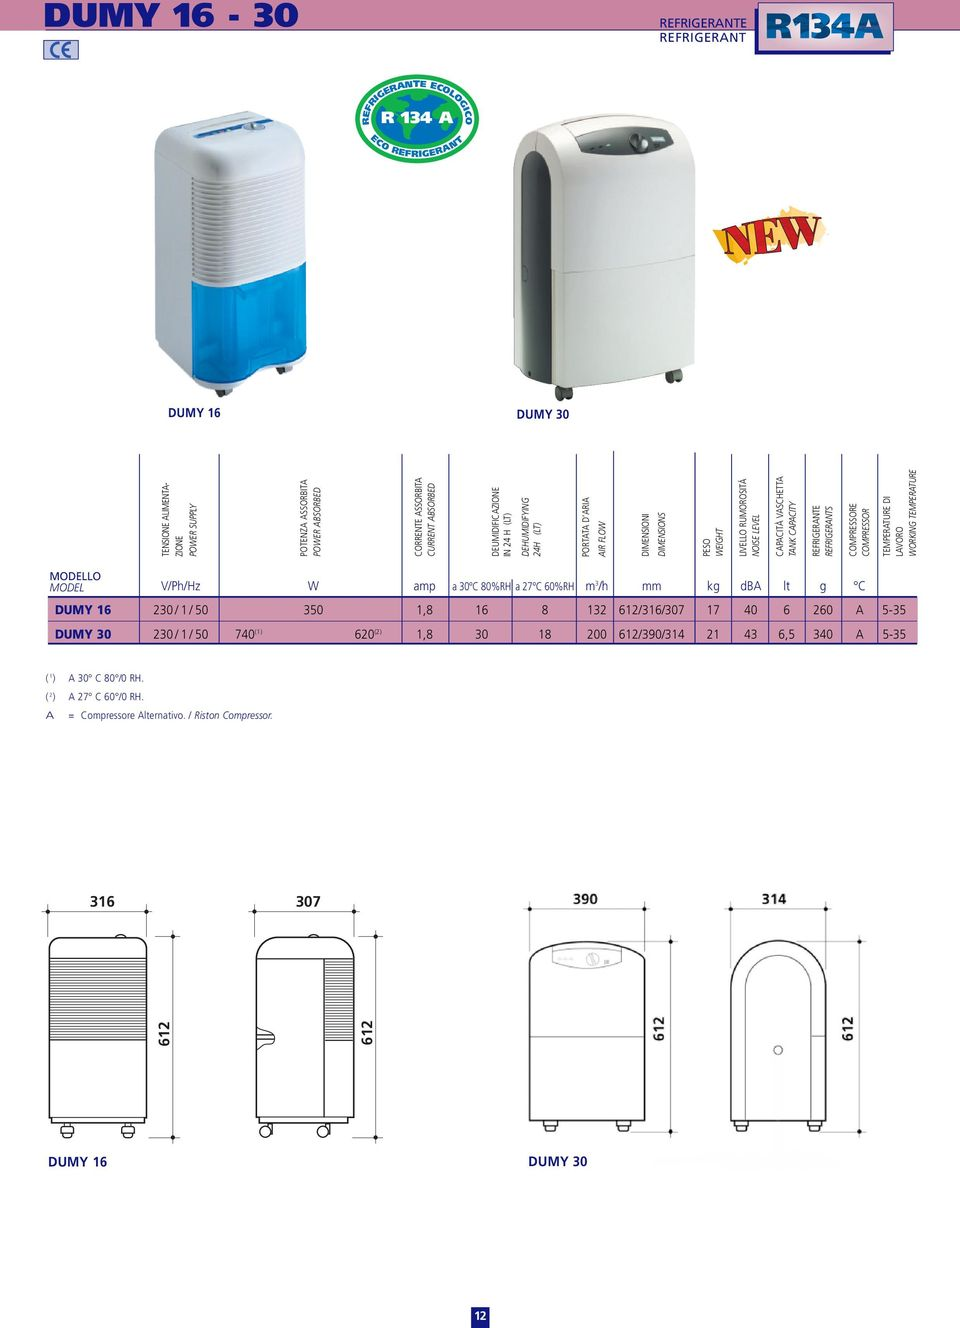 MODEL V/Ph/Hz W amp a 30 80%RH a 27 60%RH m 3 /h mm kg d lt g DUMY 16 230 / 1 / 50 350 1,8 16 8 132 612/316/307 17 40 6 260 5-35 DUMY 30 230 / 1 / 50 740 (1) 620 (2) 1,8 30 18 200